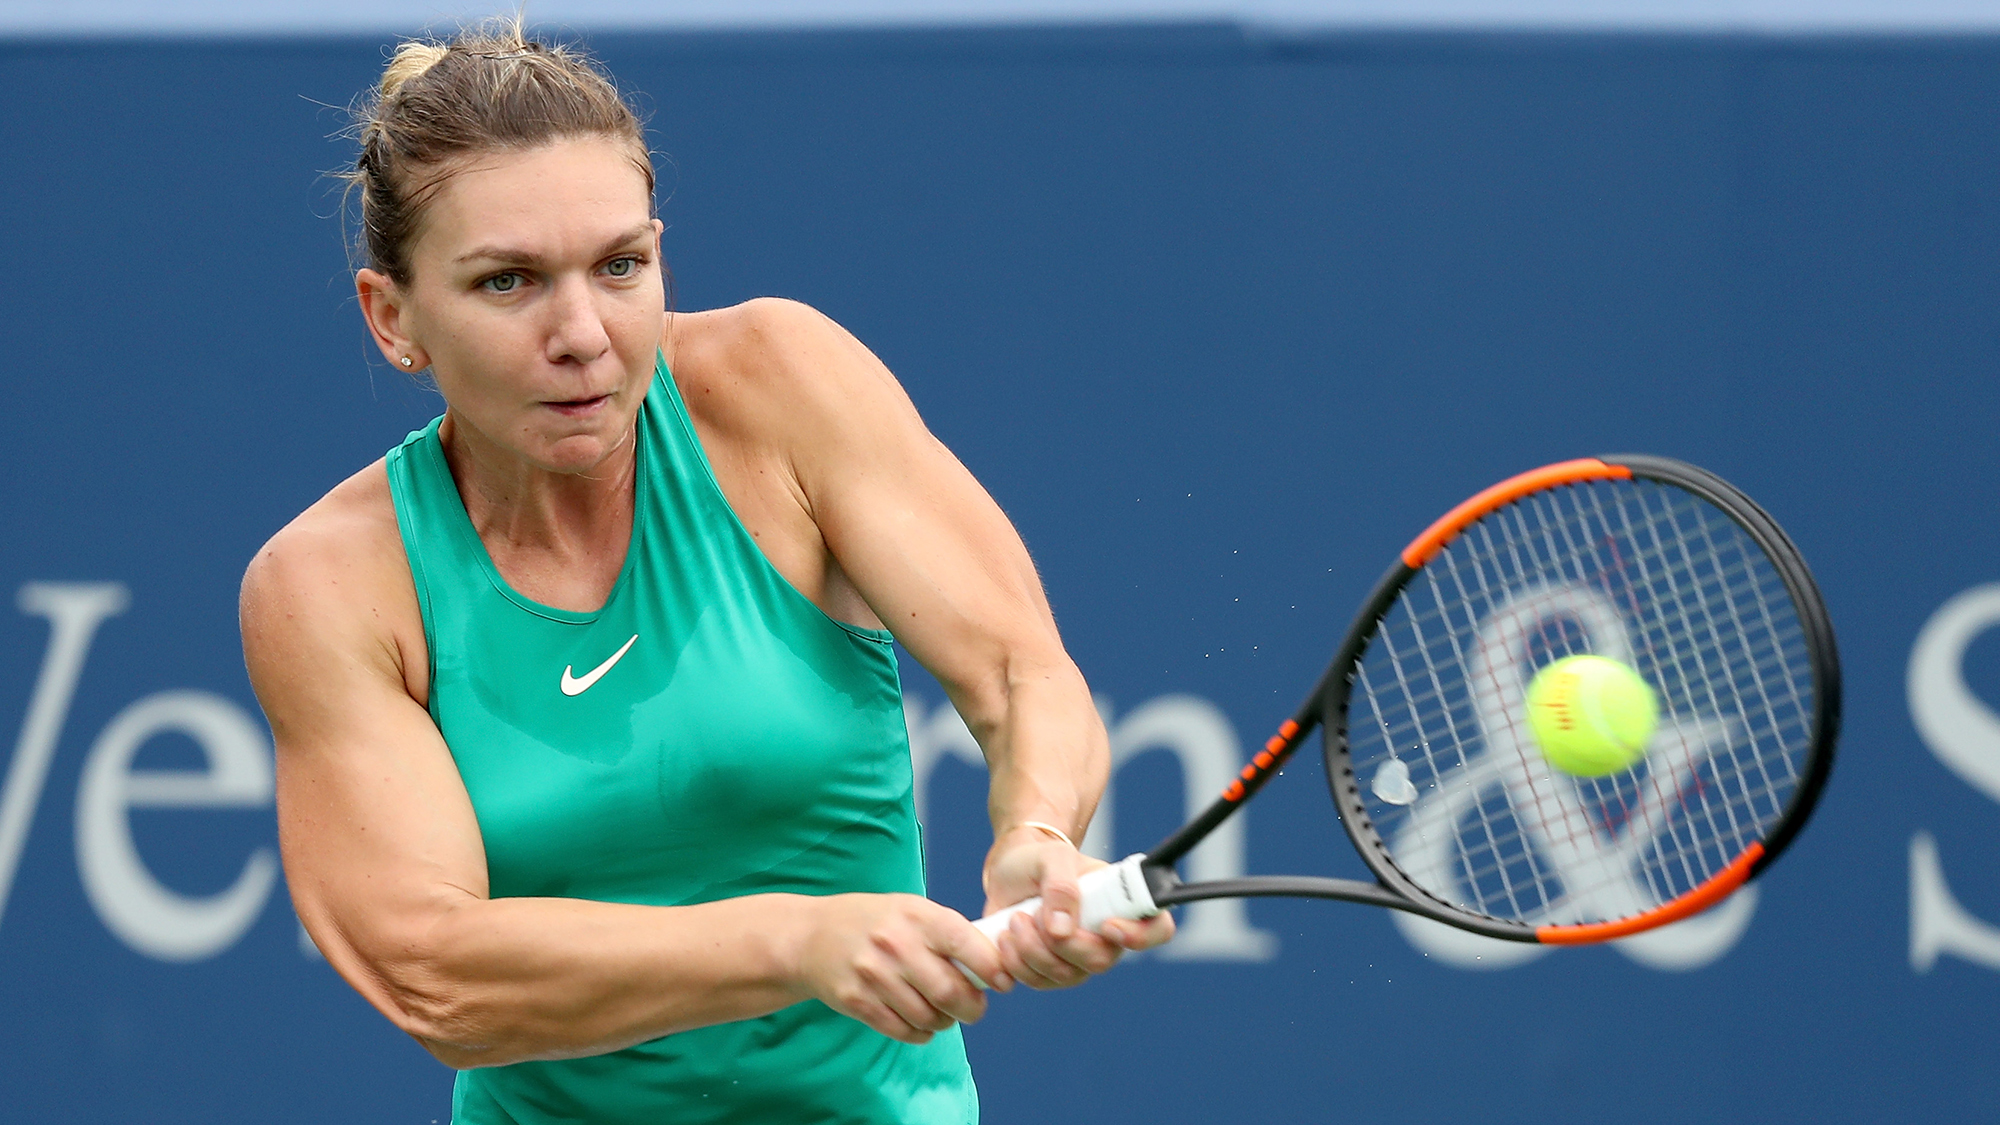 Simona Halep wta player of the year